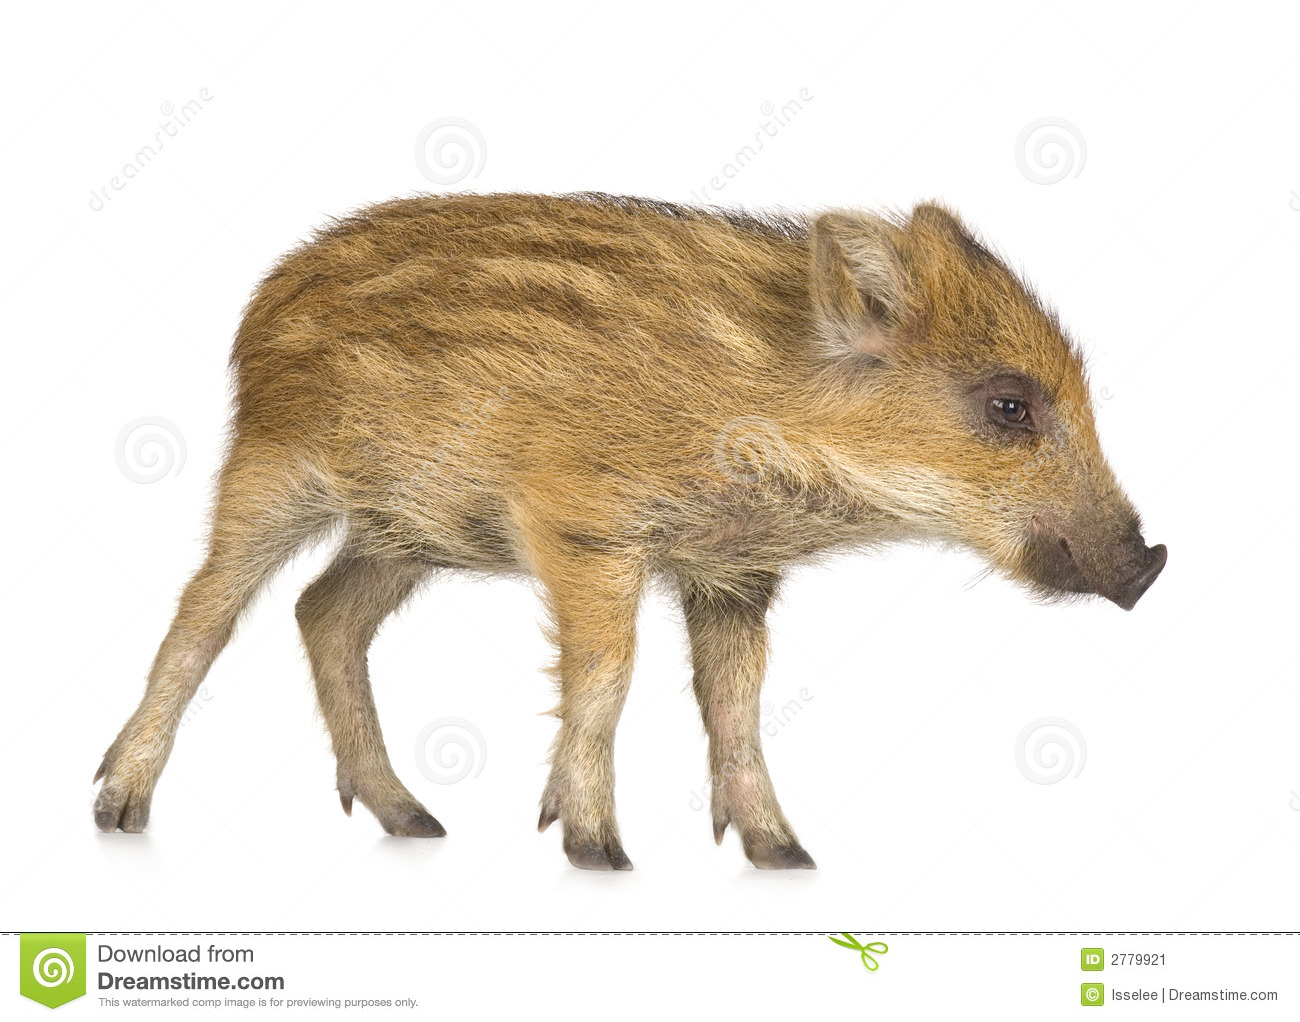 wild-boar-young